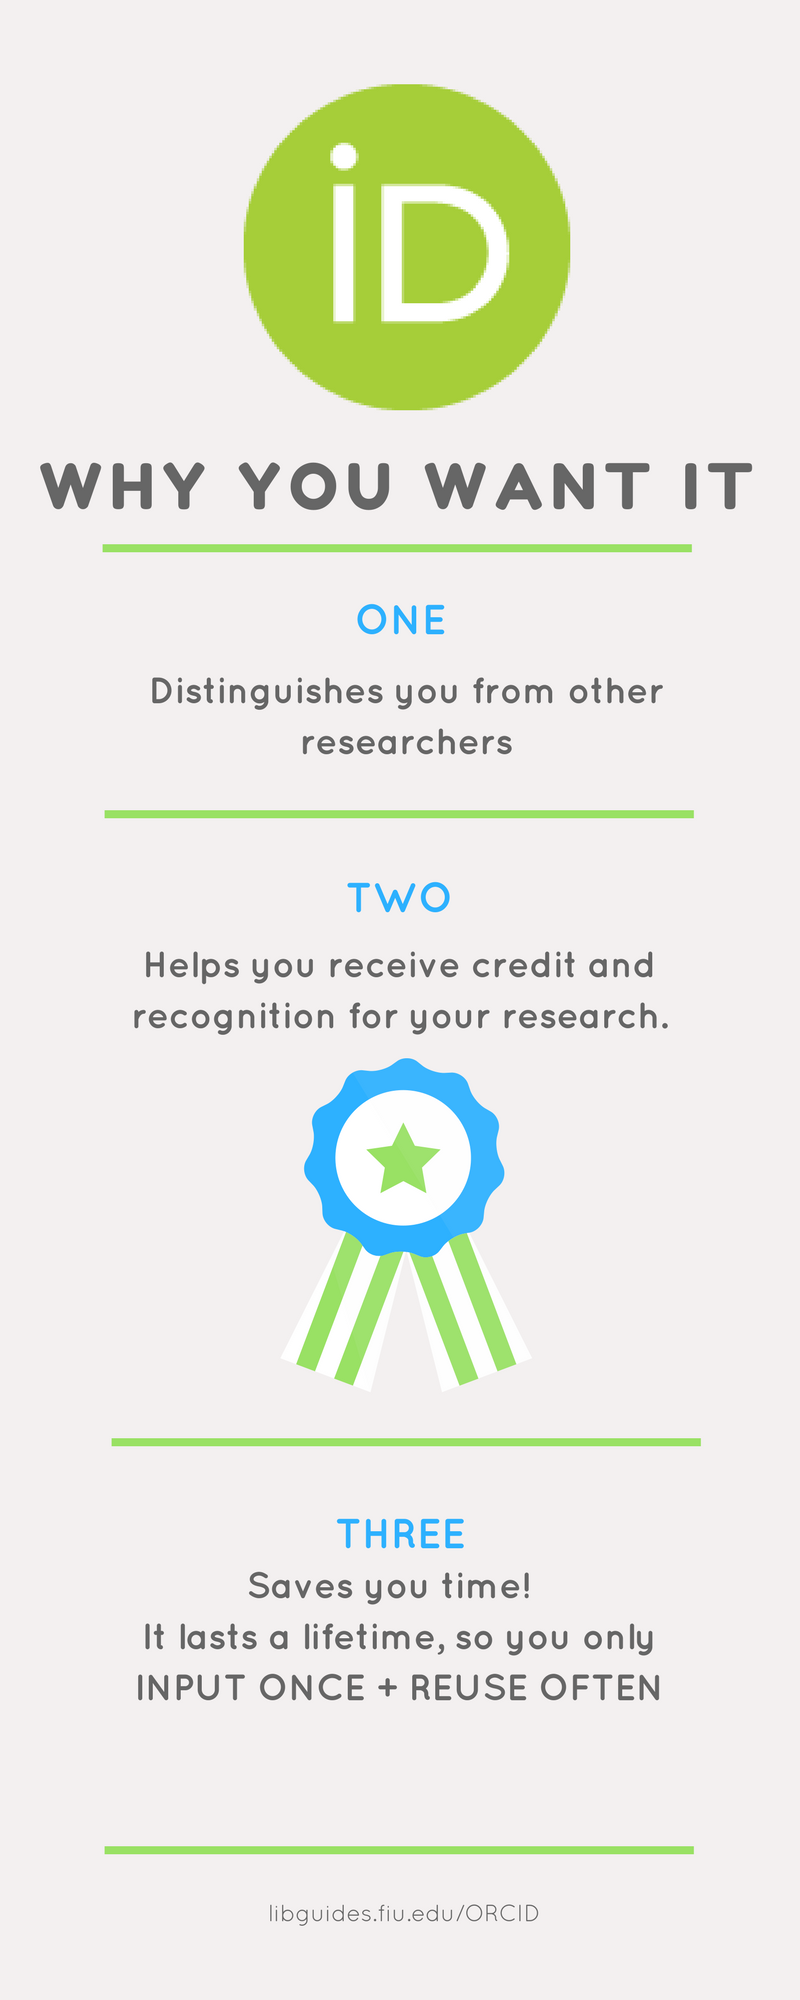 Why you want it.  It distinguishes you from other researchers.  It helps you recieve credit and recognition for your researcher.  It saves you time and lasts a lifetime.  You only input once and reuse it often.